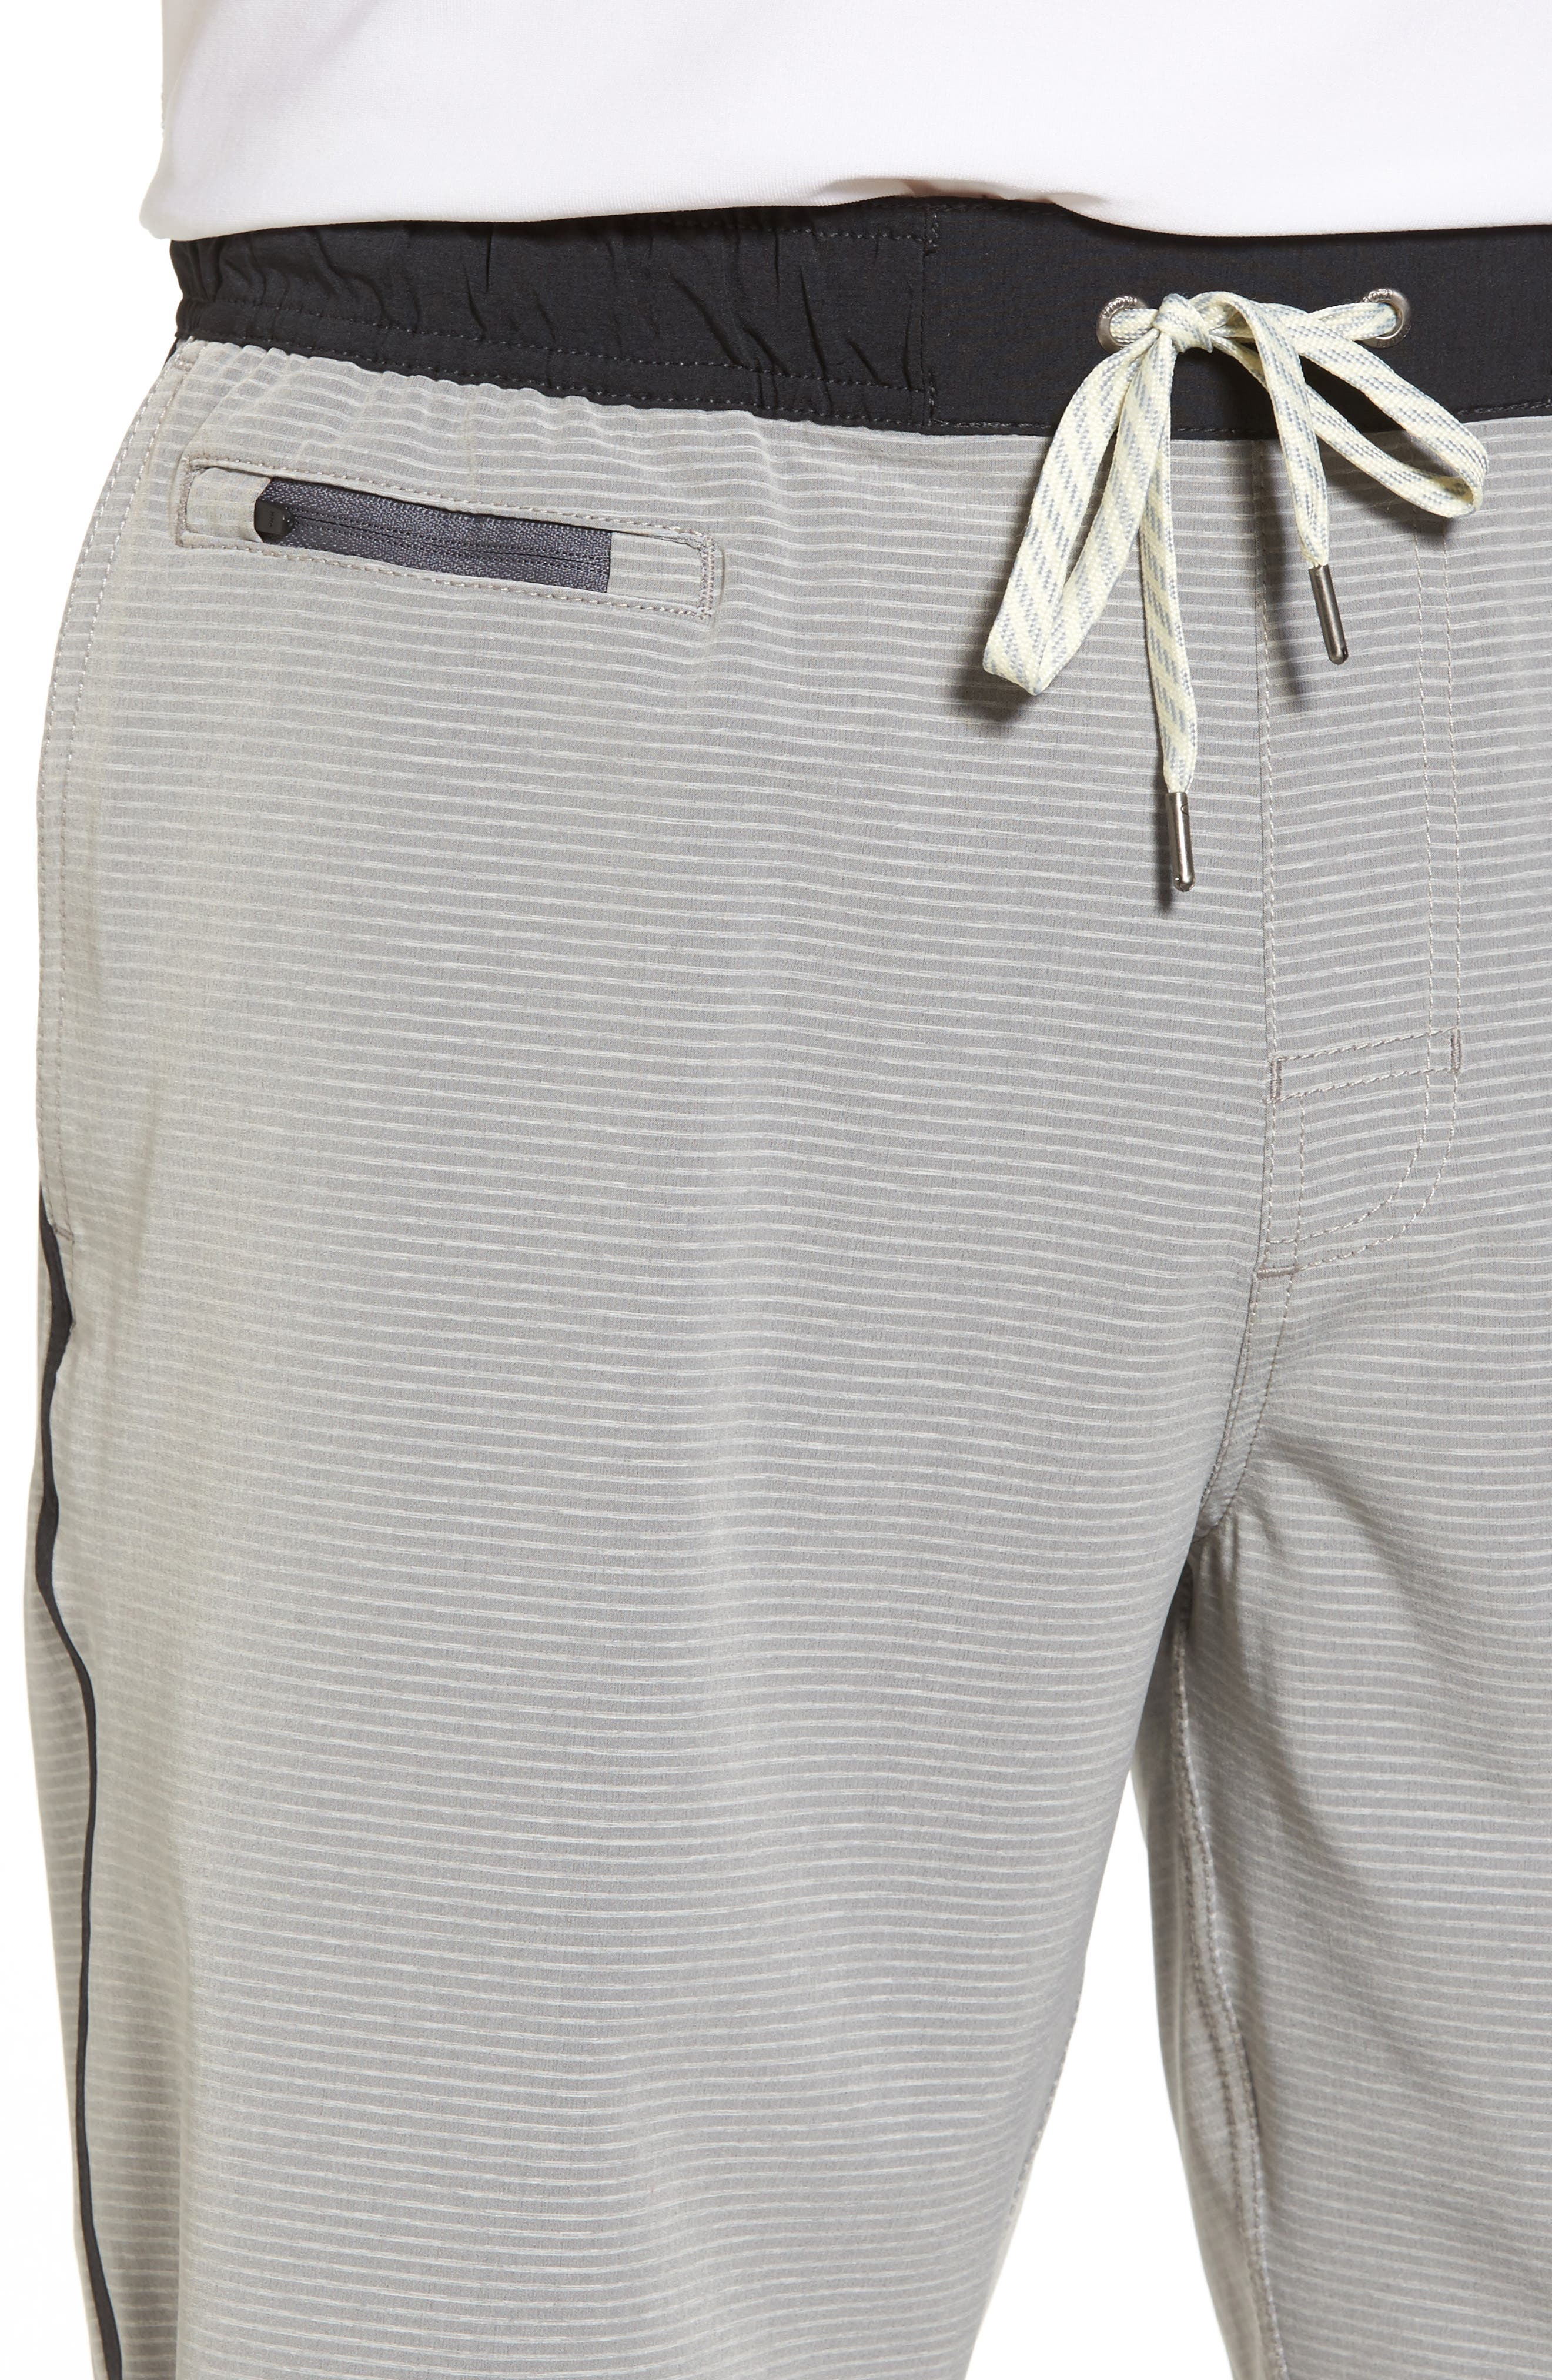 Banks Athletic Shorts,                             Alternate thumbnail 4, color,                             Light Grey Engineered Stripe